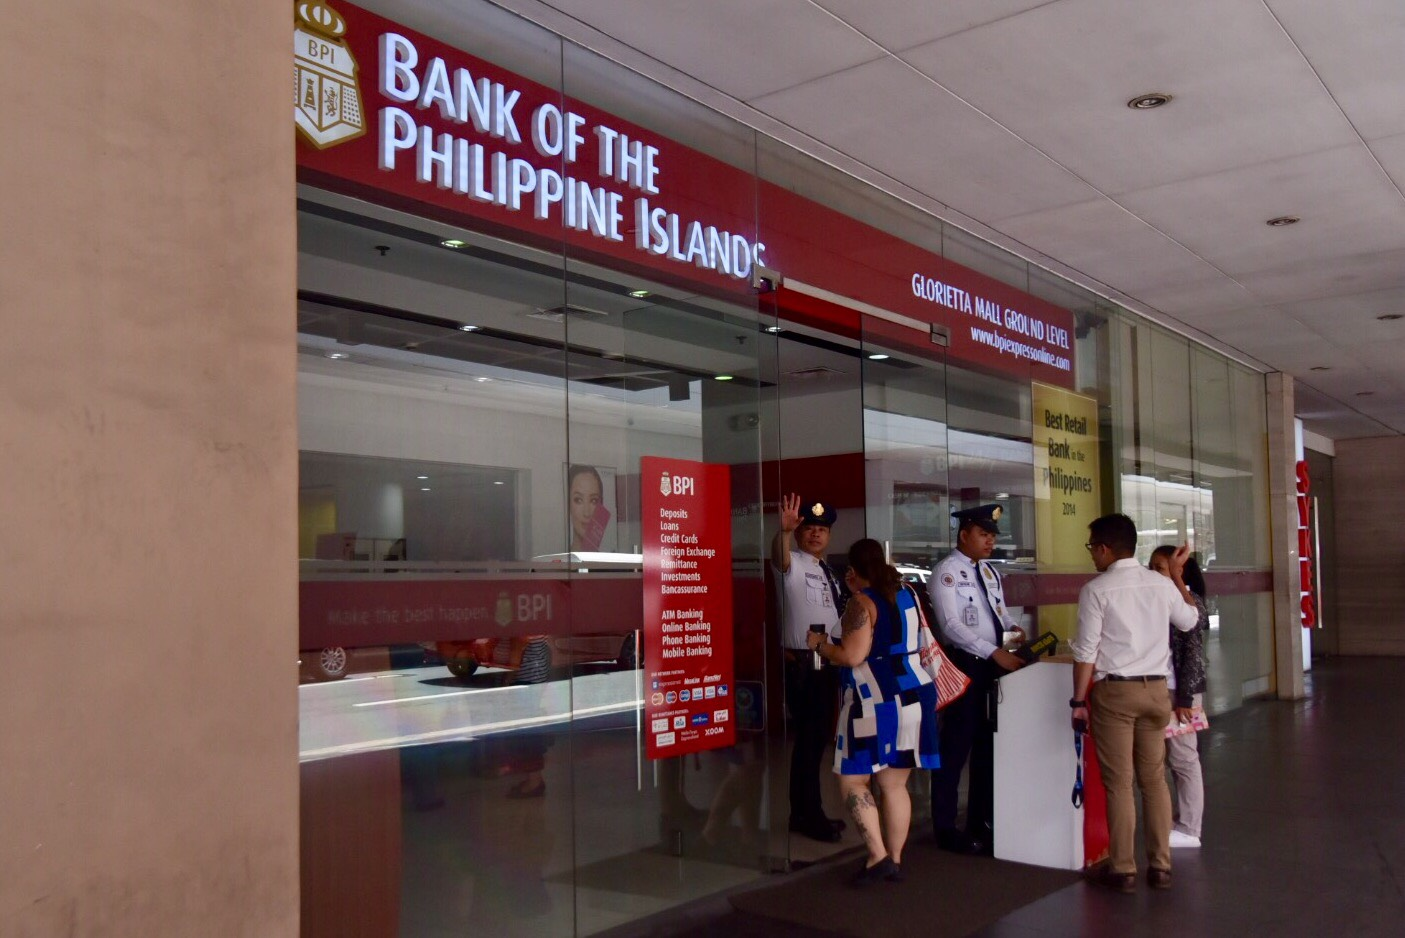 BPI services unavailable or limited due to 'systems upgrade issues'